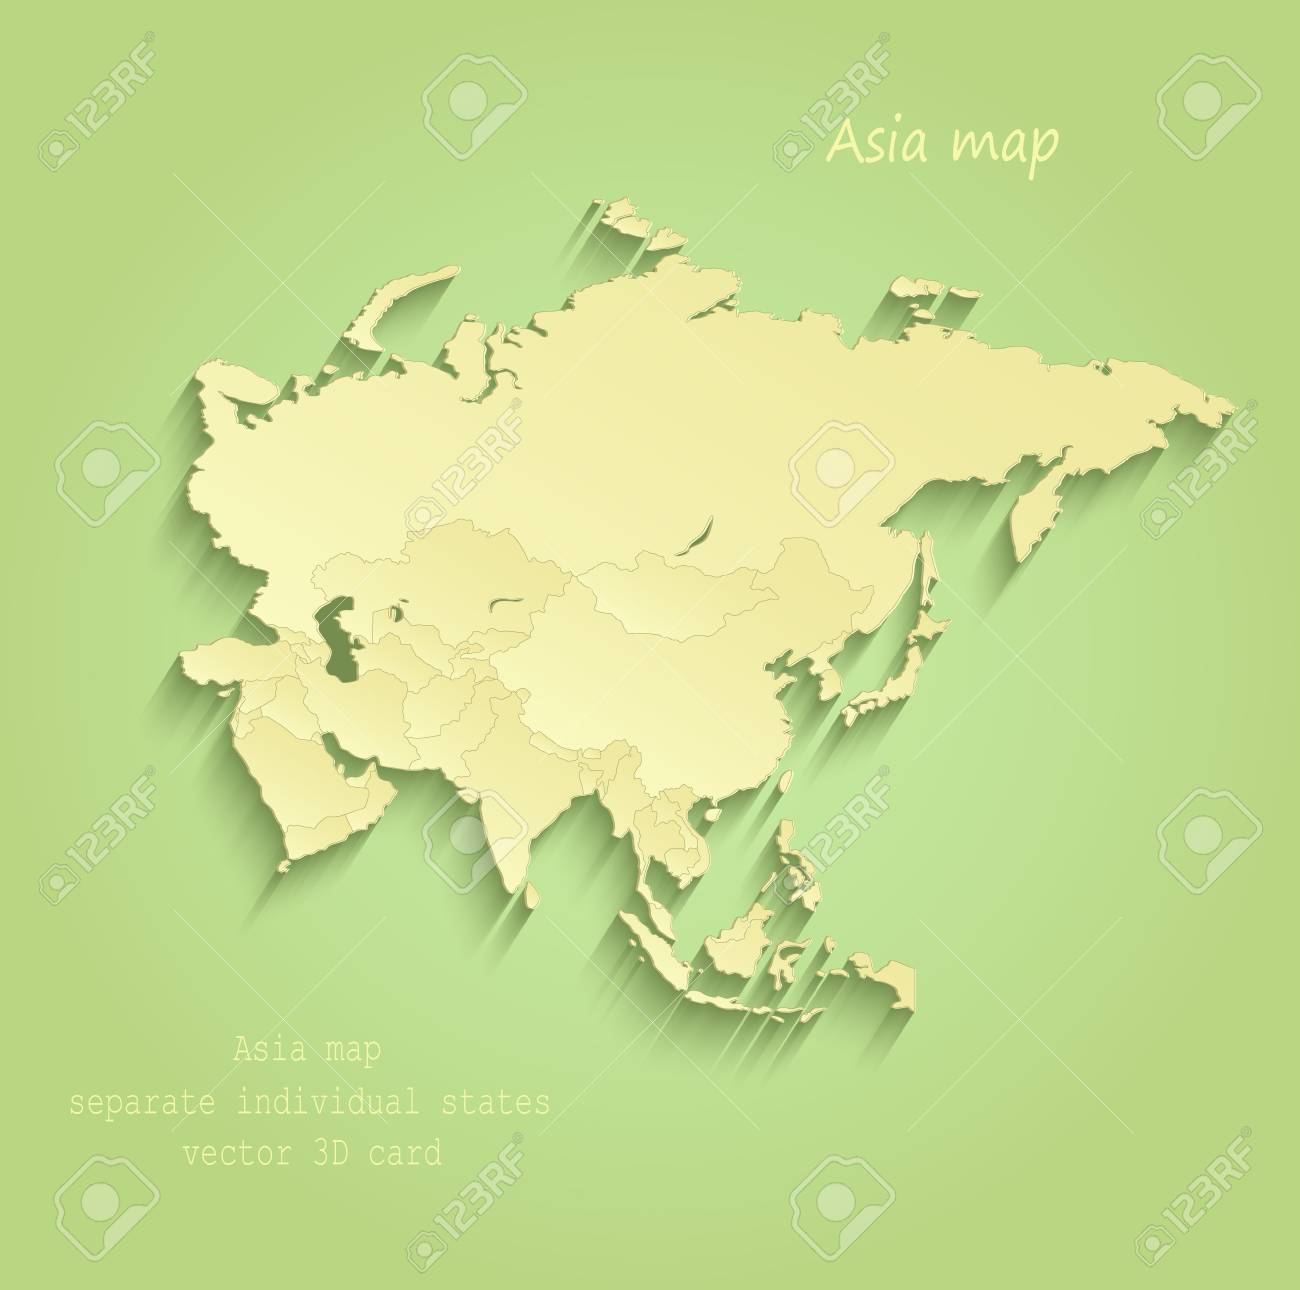 Asia map Separate Individual states green yellow vector - 73522006